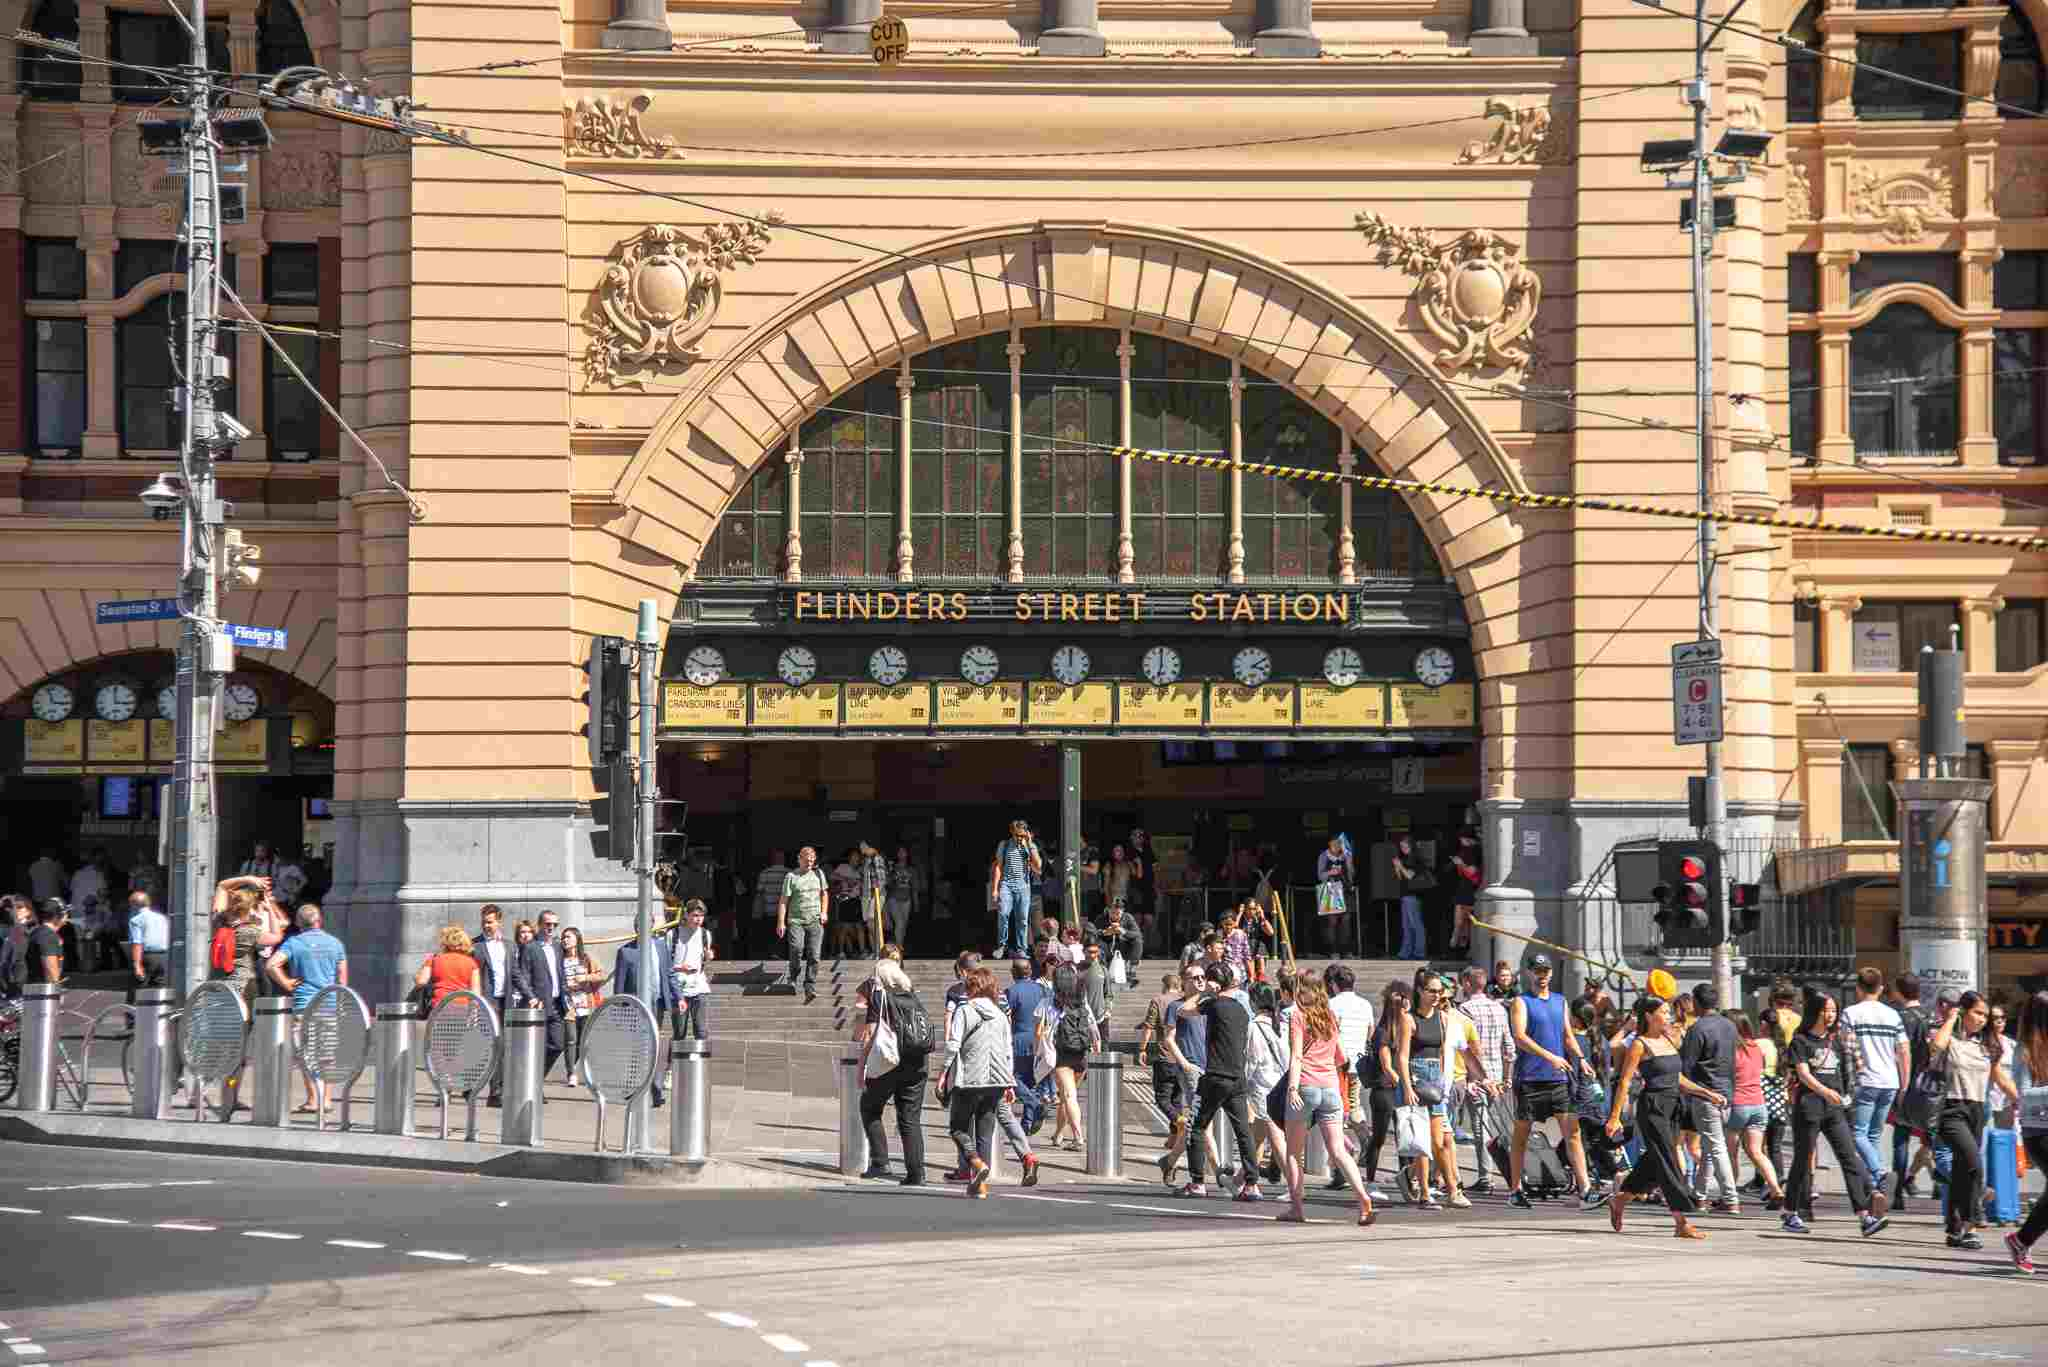 A large group of people in front of Flinders St Station